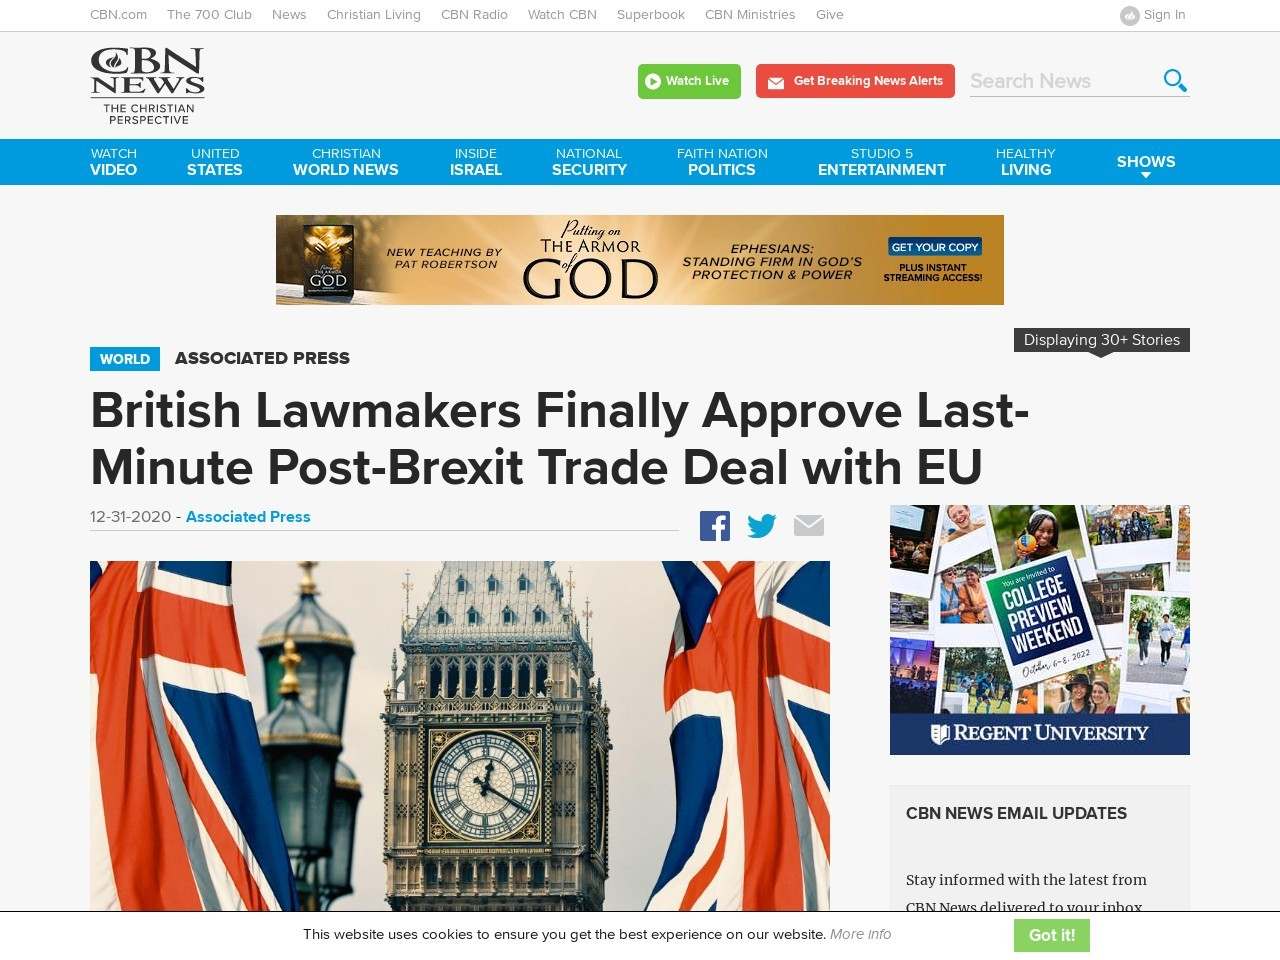 British Lawmakers Finally Approve Last-Minute Post-Brexit Trade Deal with EU